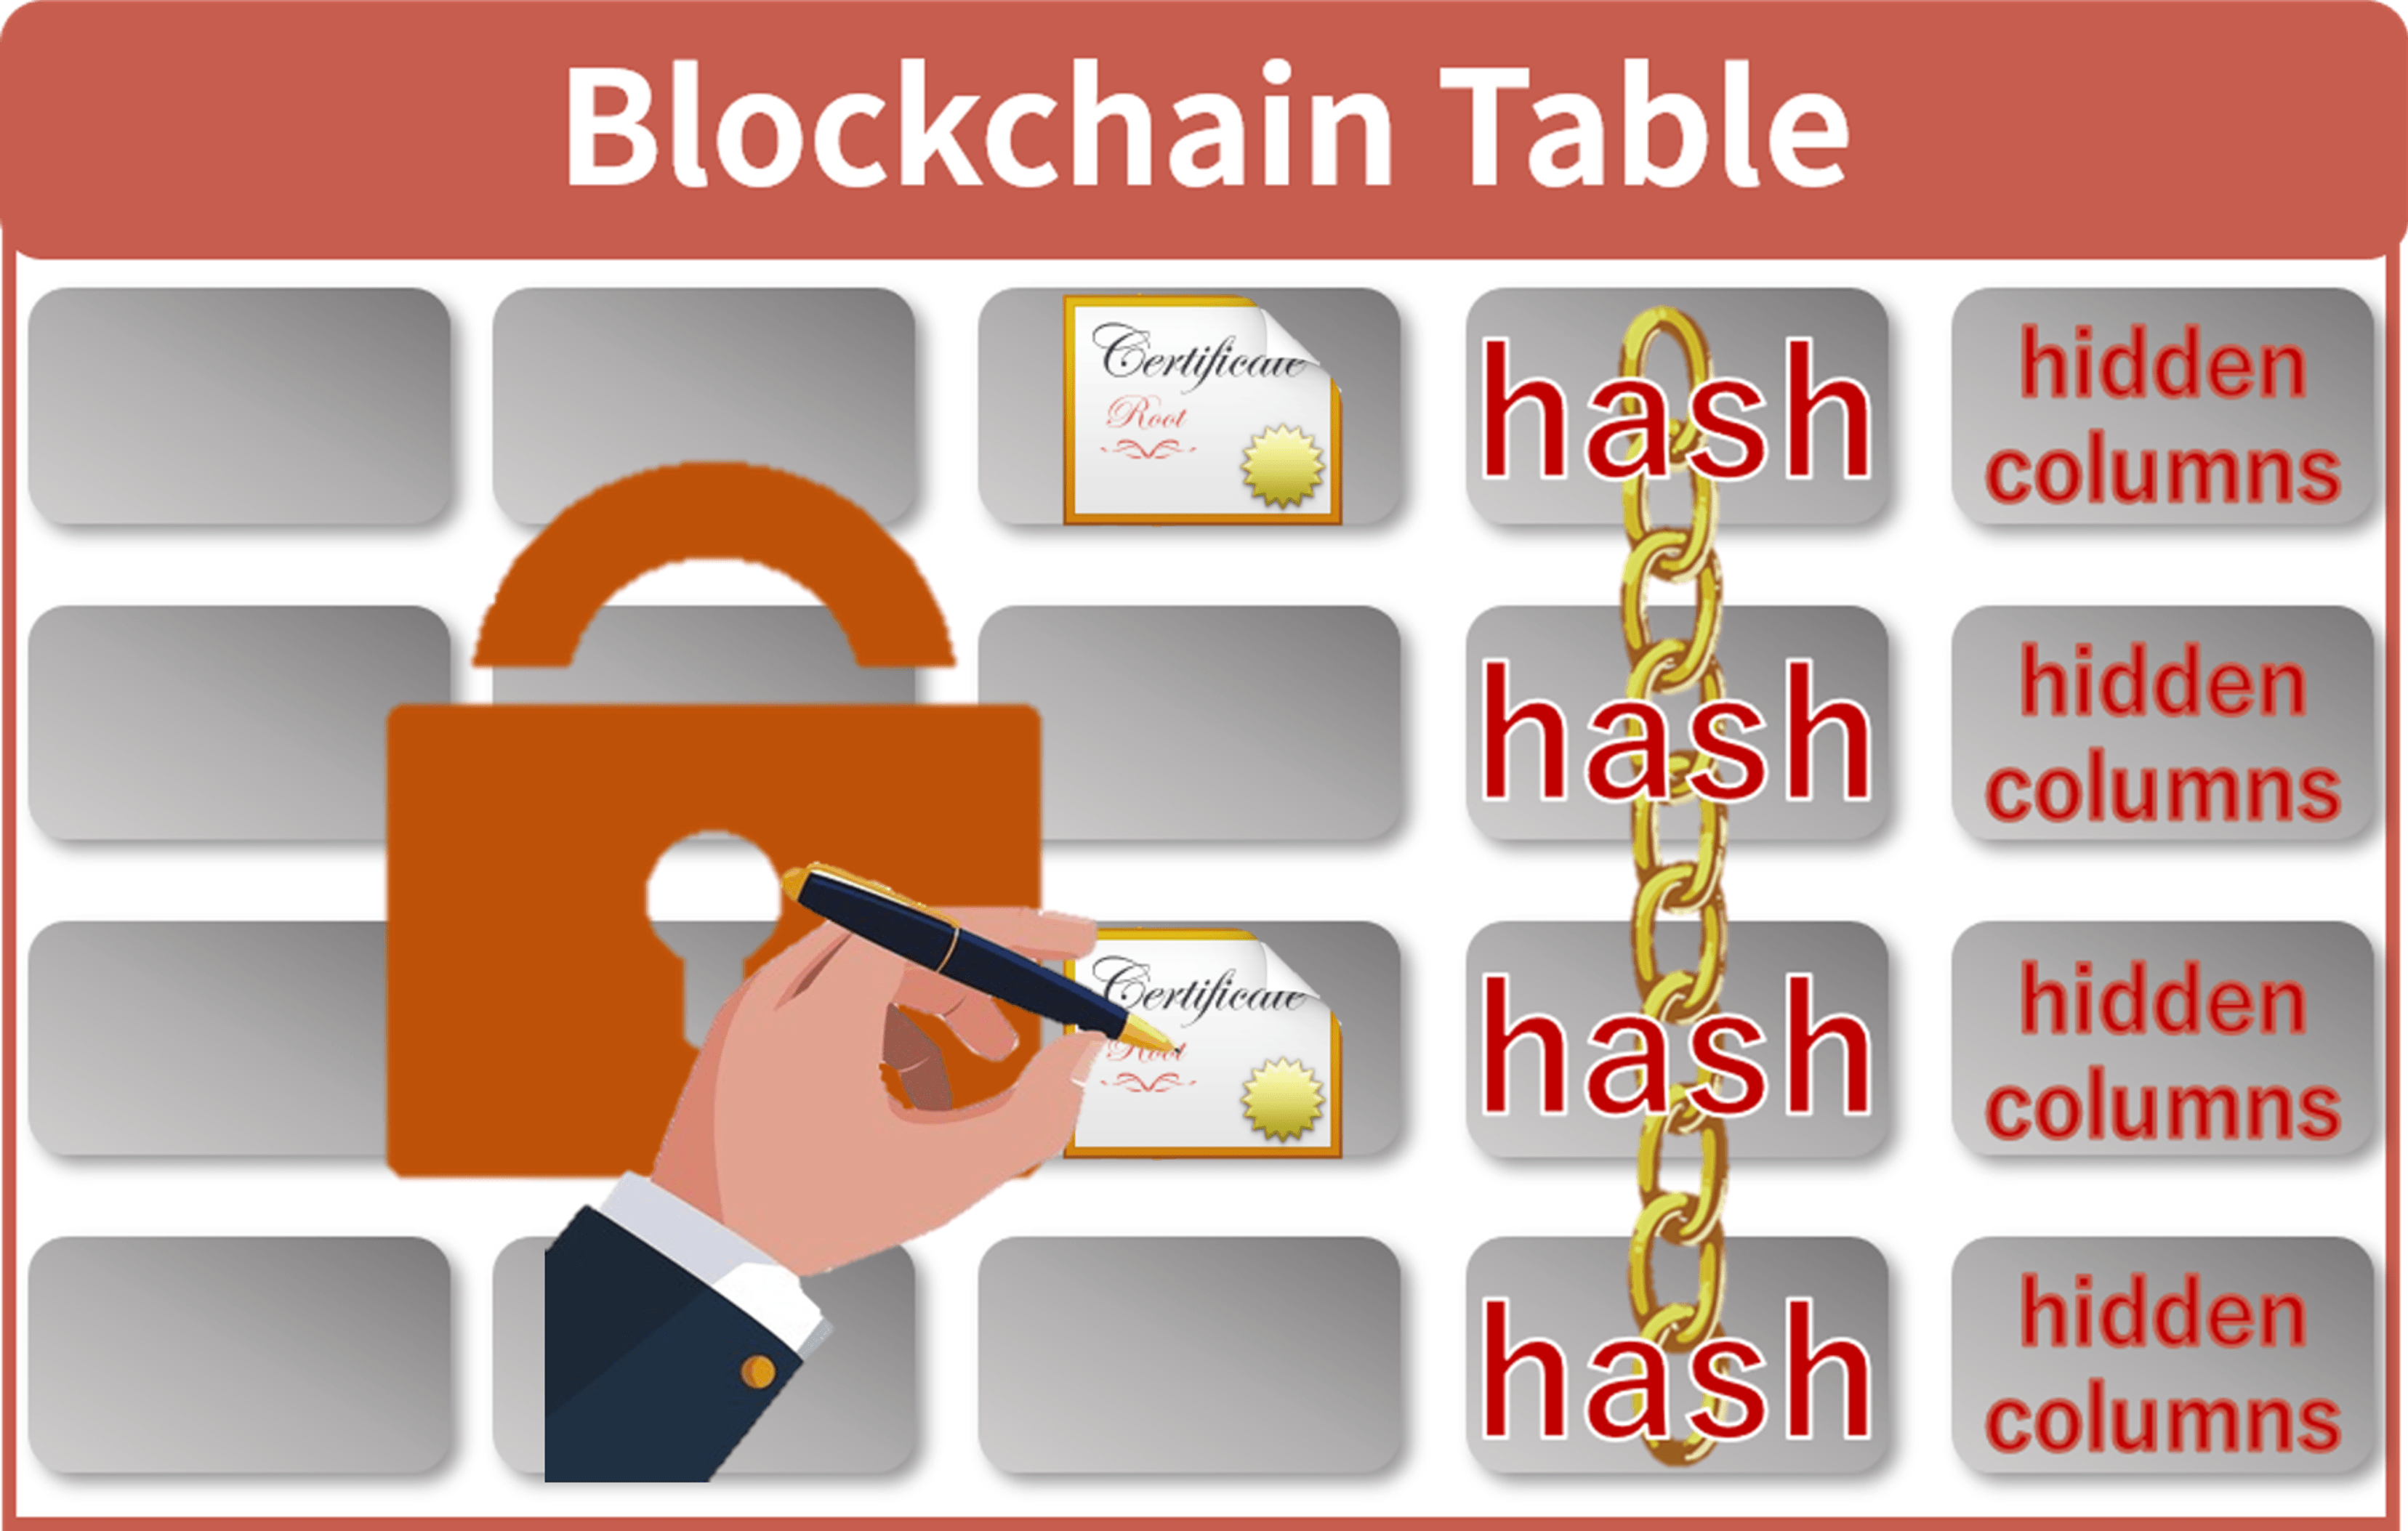 Digital Certification and Signature on Blockchain Table